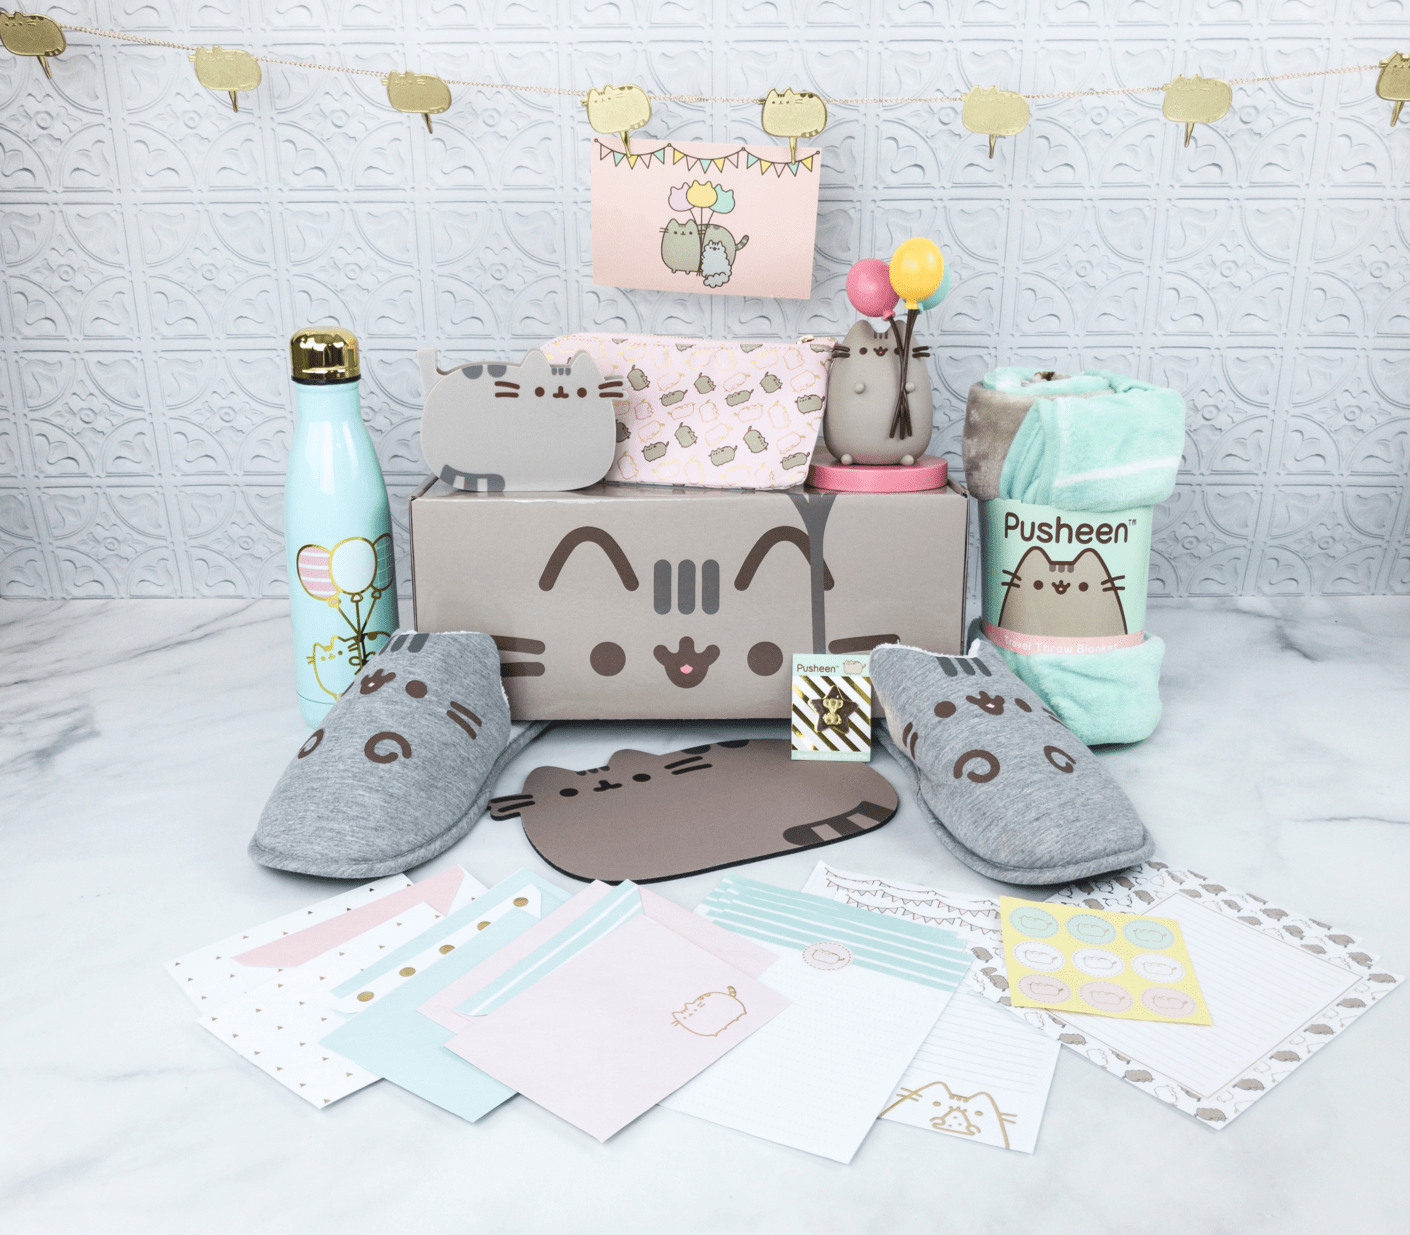 Pusheen Box Spring 2018 Giveaway Hello Subscription